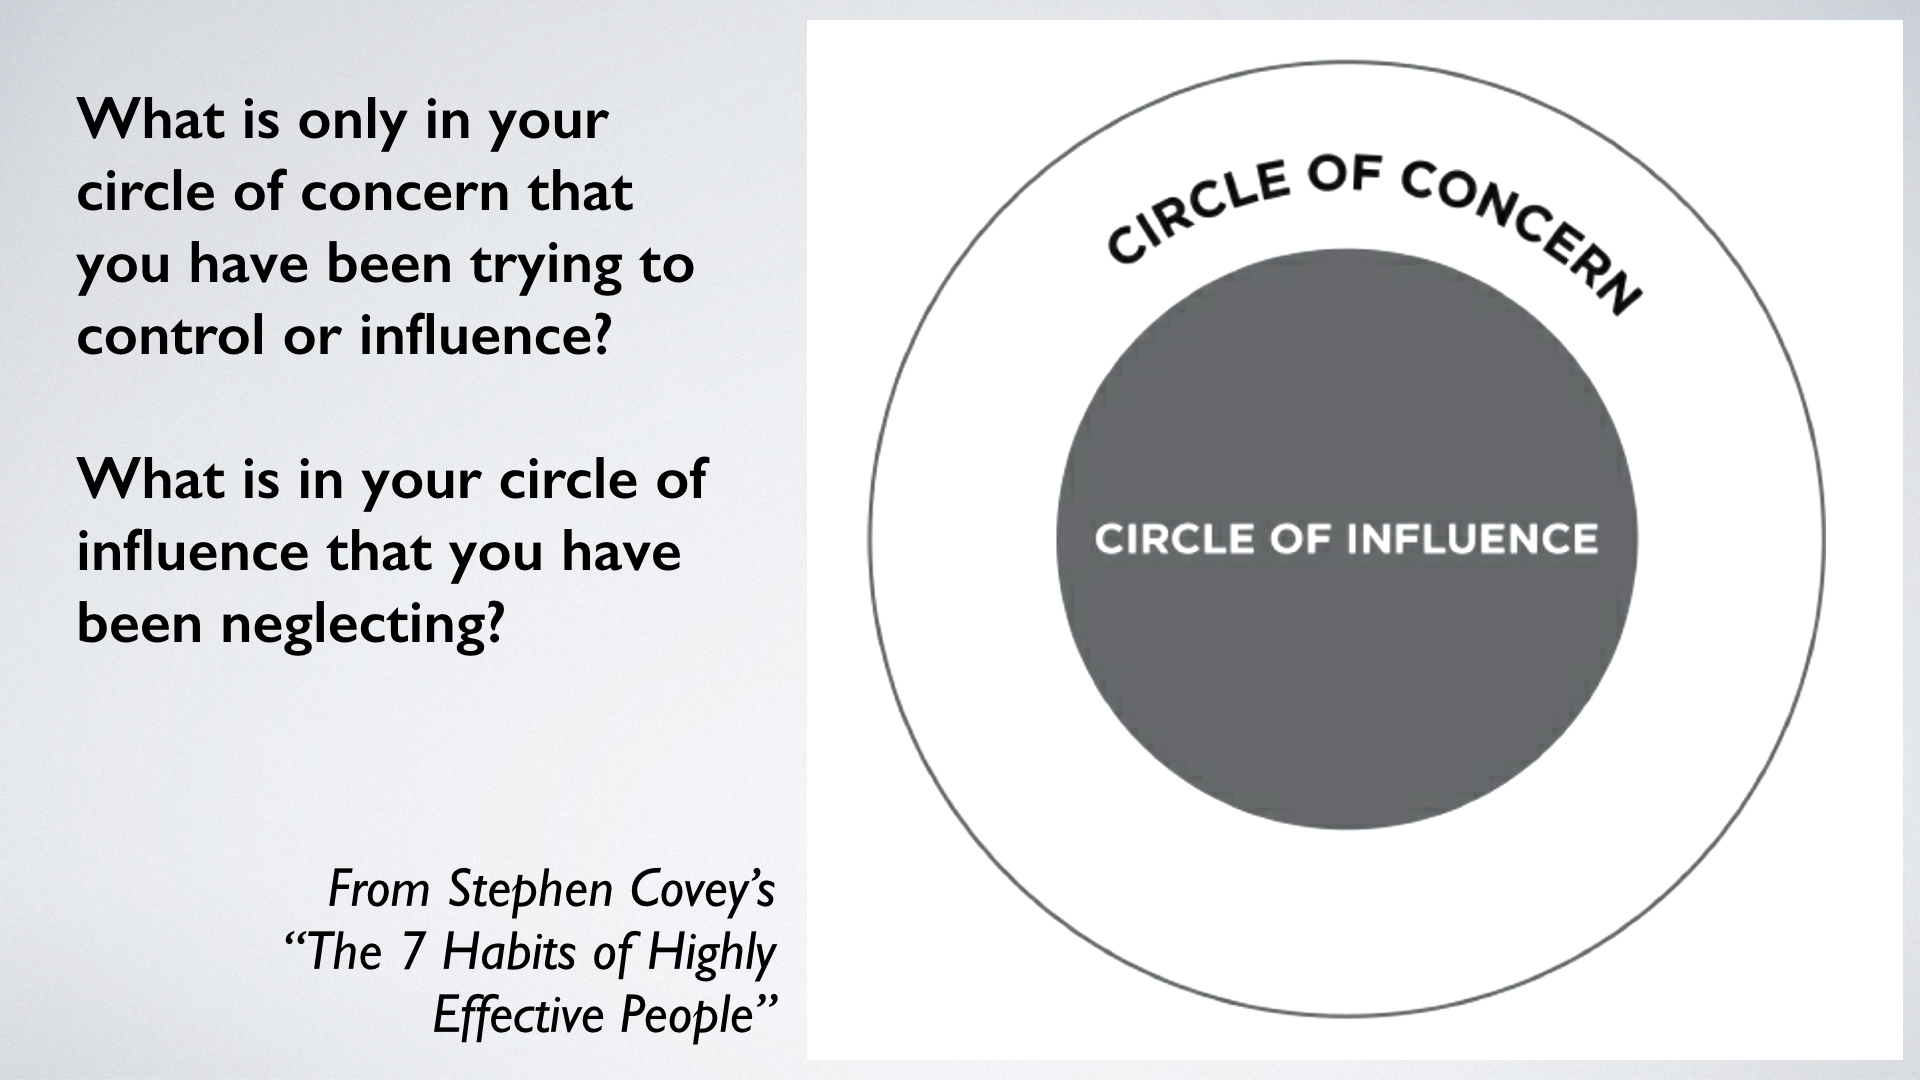 Circles of concern and influence